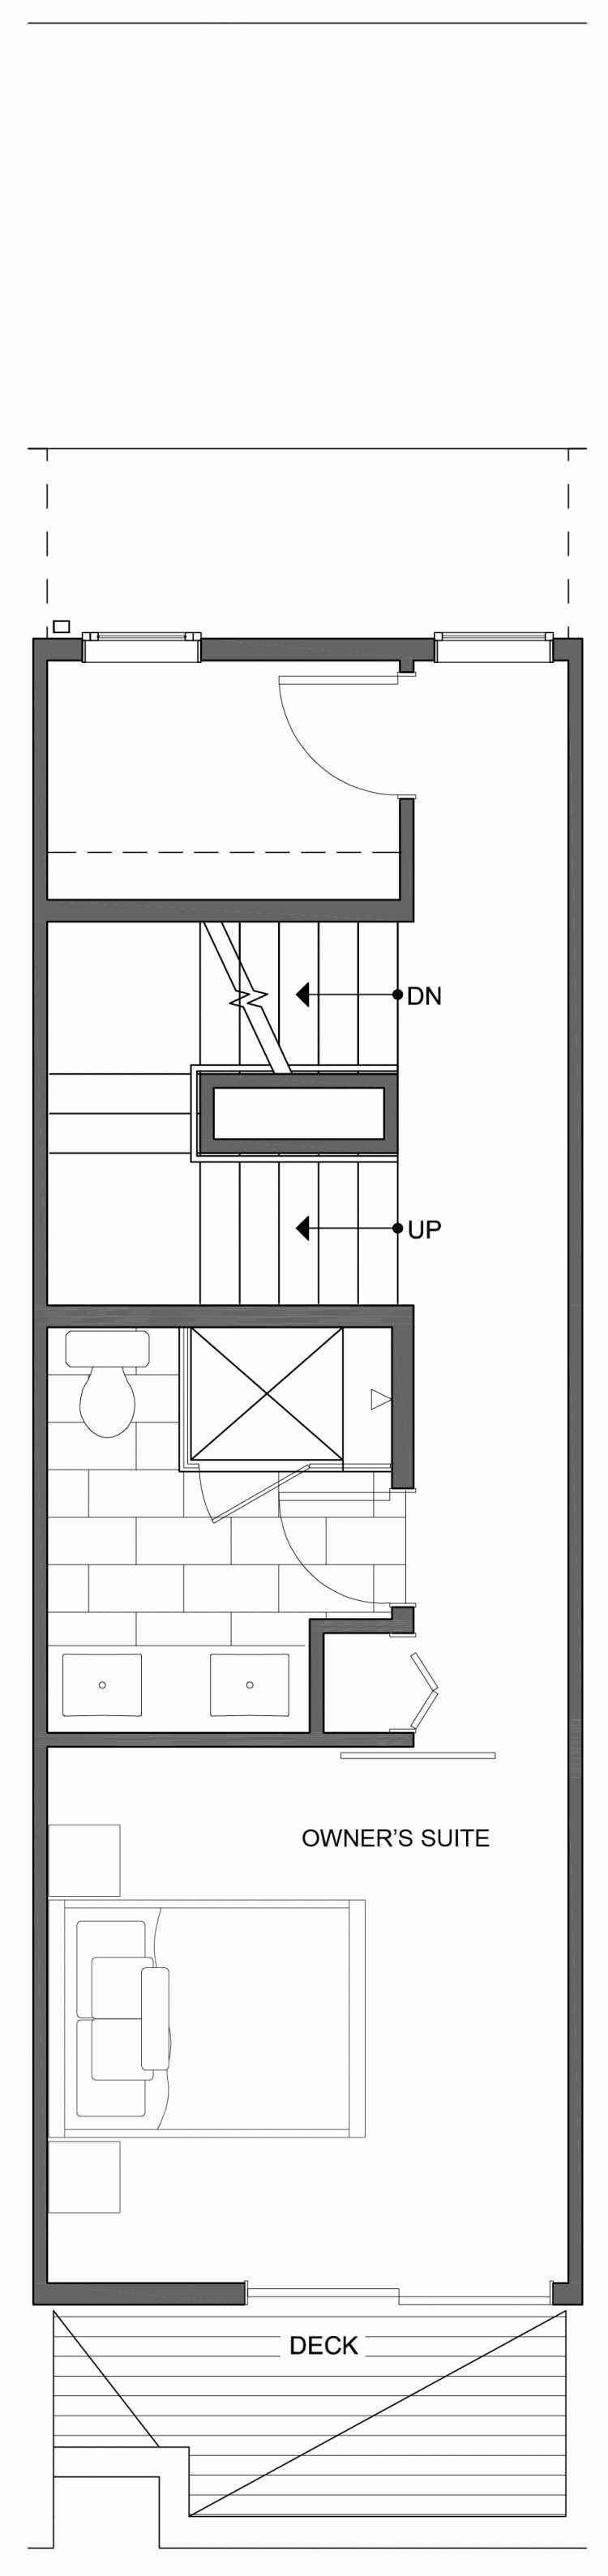 Fourth Floor Plan of 806A N 46th St, One of the Nino 15 East Townhomes by Isola Homes